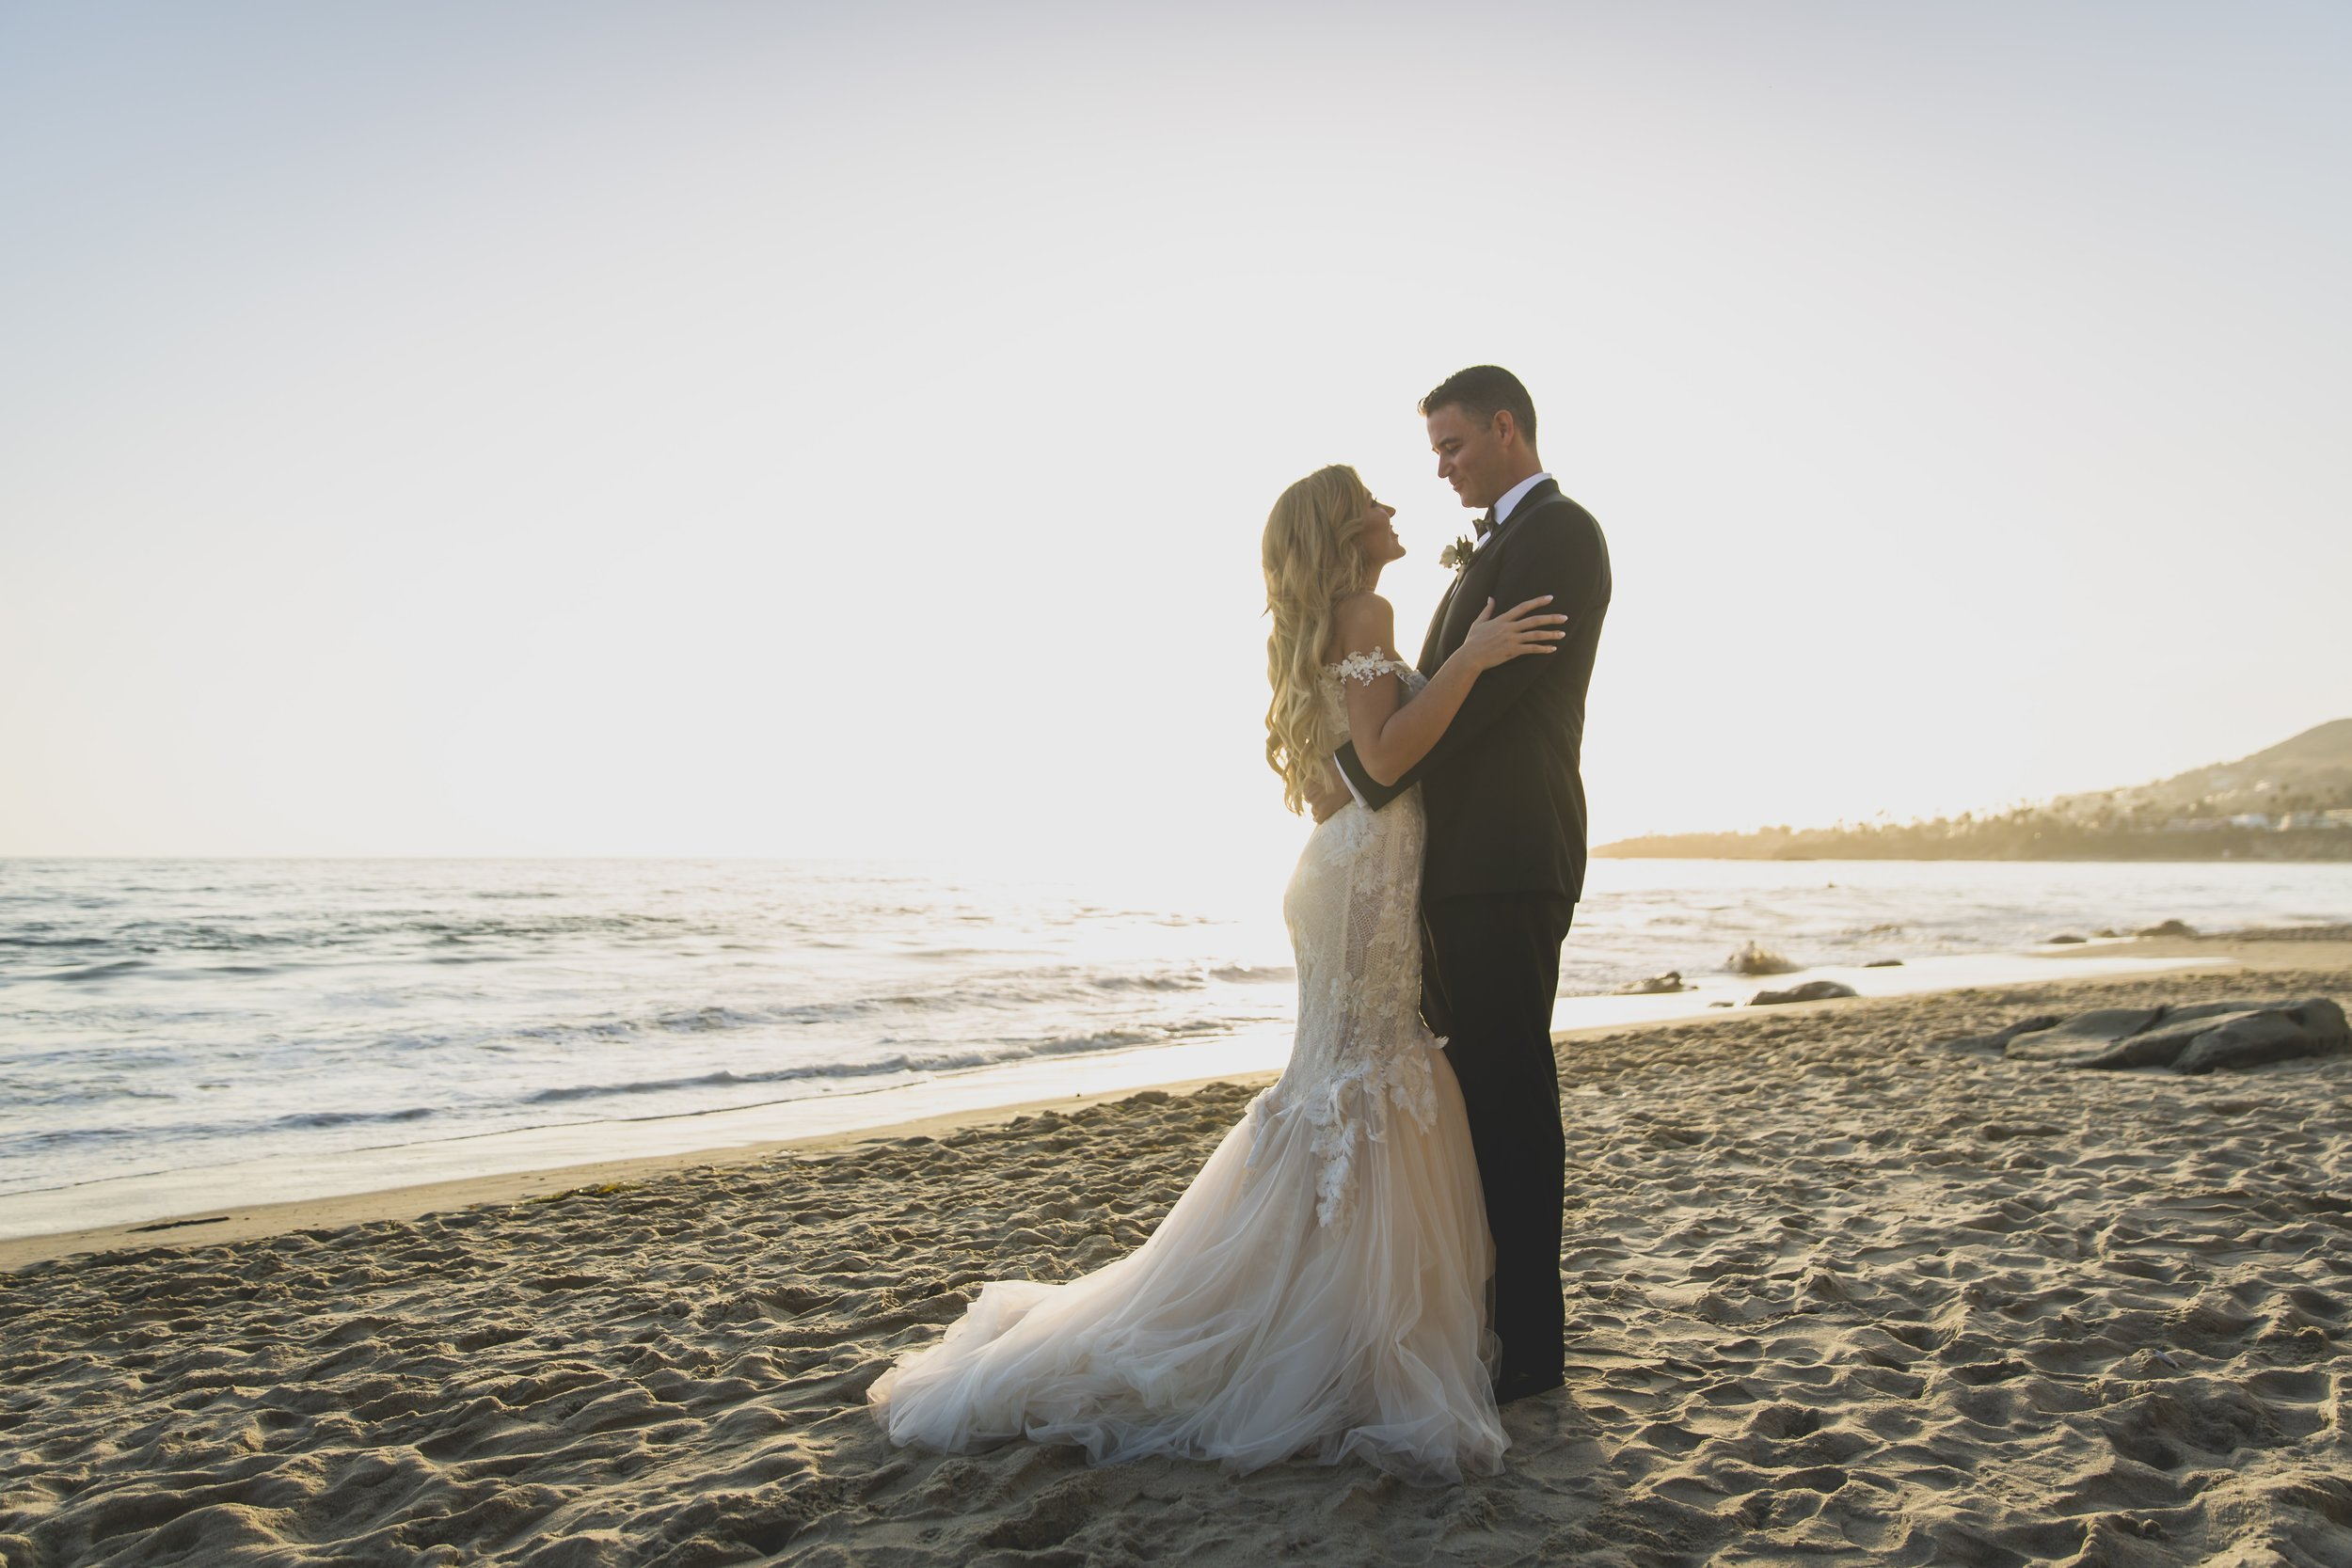 Wedding Photography Packages - Heritage Park, Dana Point, CA - Bride and groom embracing on the beach with the sun high in the sky as they stare into one another's eyes.